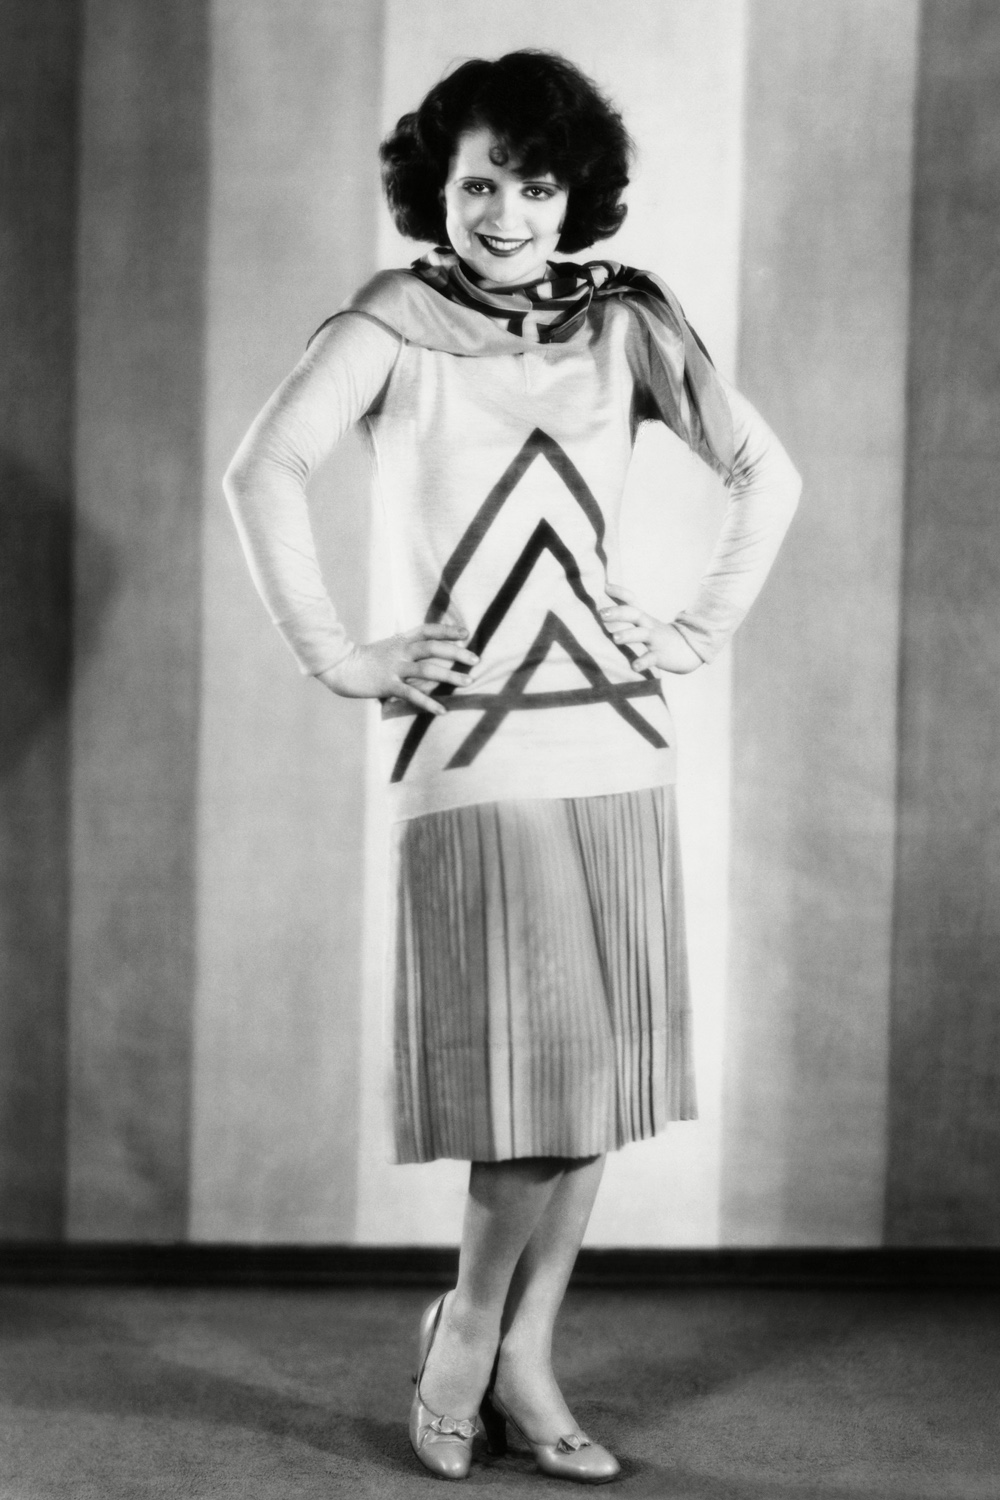 1920s Fashion History The Iconic Women Who Defined It